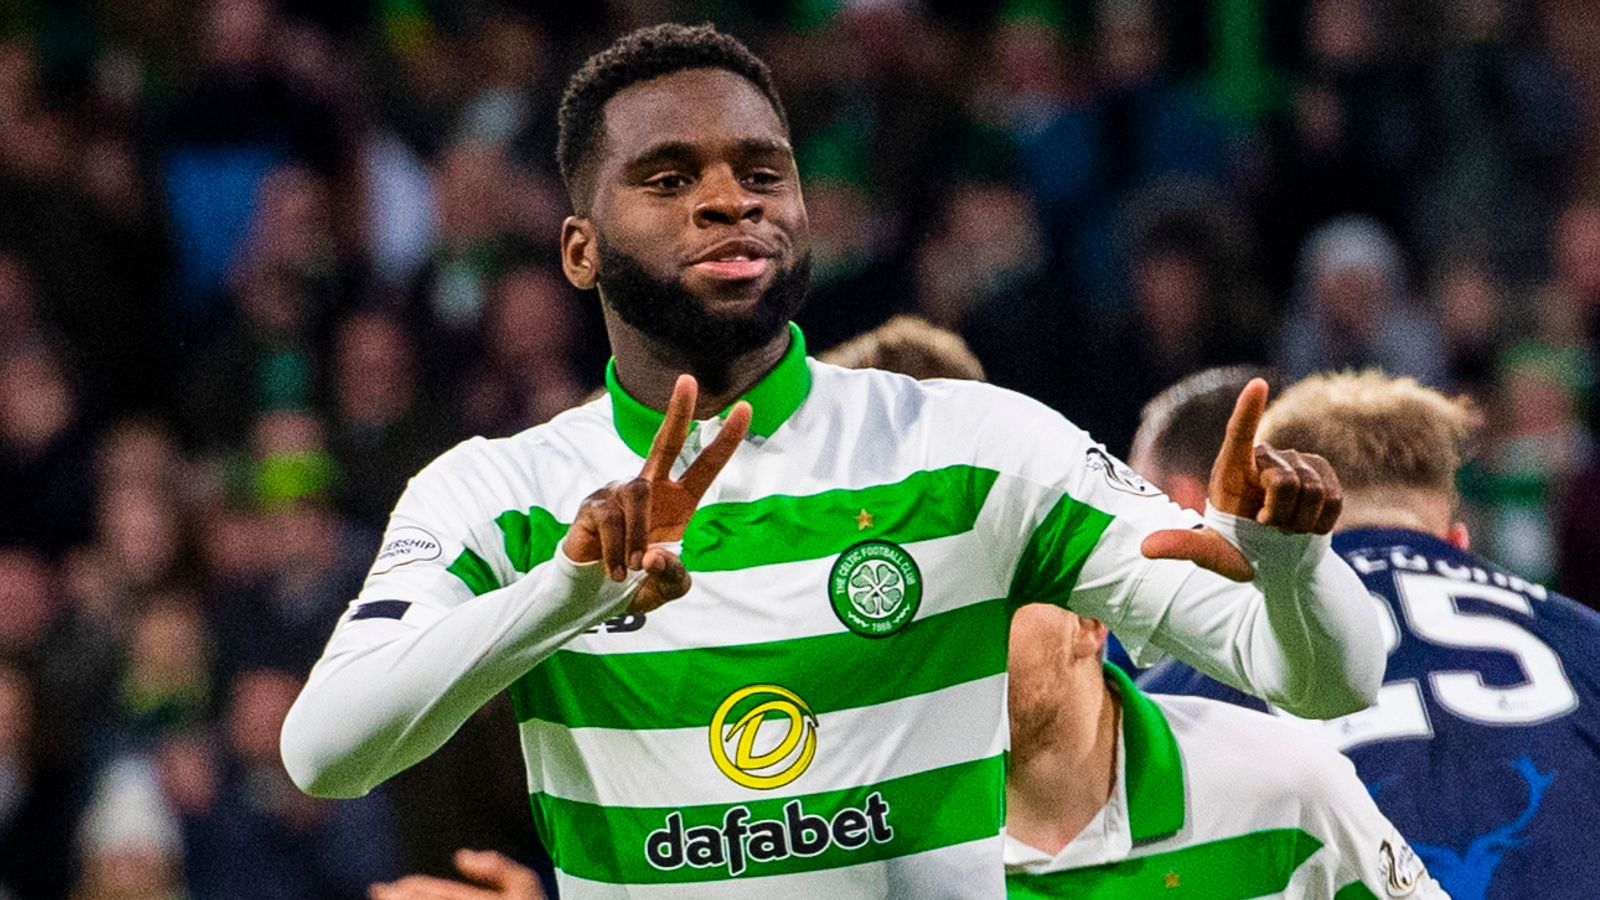 Celtic 3-0 Ross County: Odsonne Edouard double helps move hosts five points clear